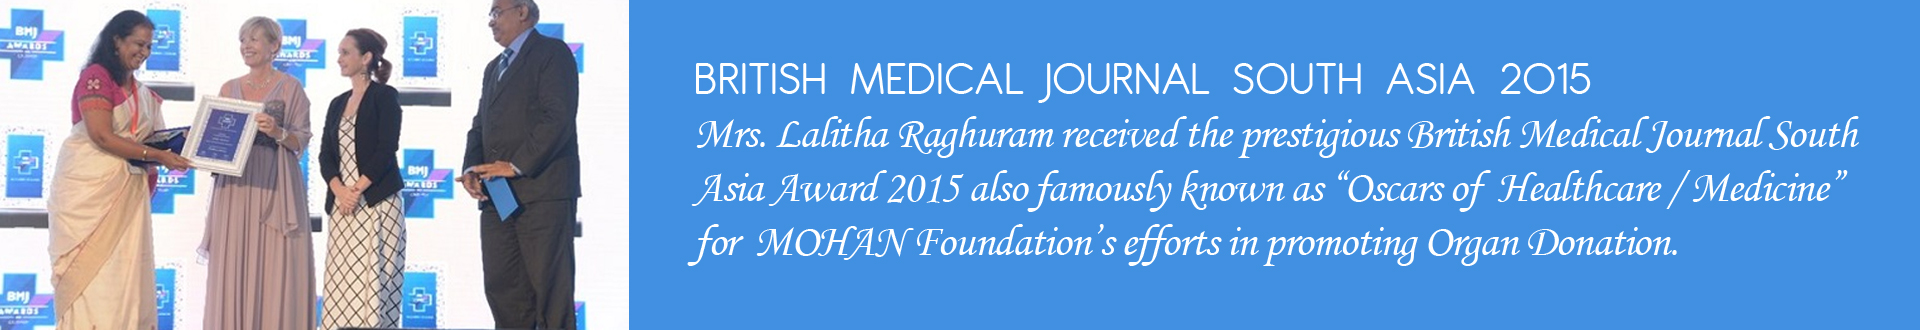 BRITISH MEDICAL JOURNAL SOUTH ASIA 2015